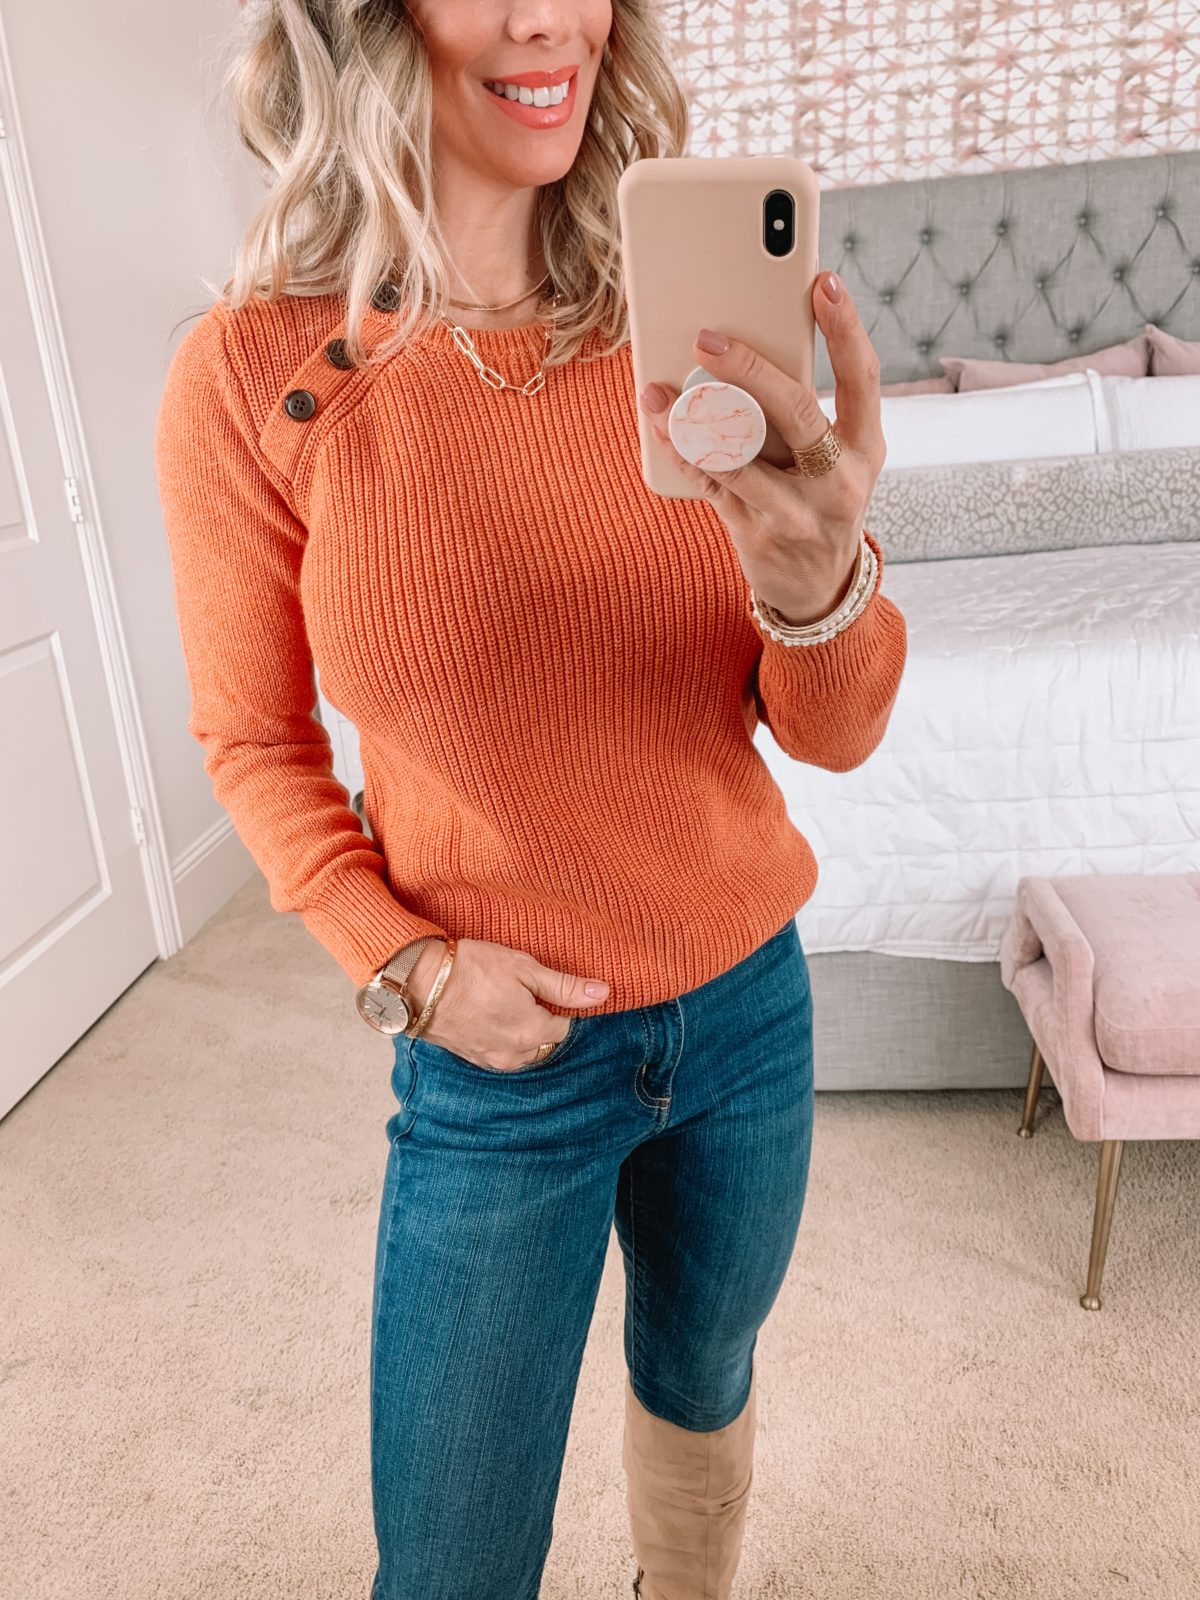 Amazon Fashion Faves, Orange Sweater, Jeans, Boots